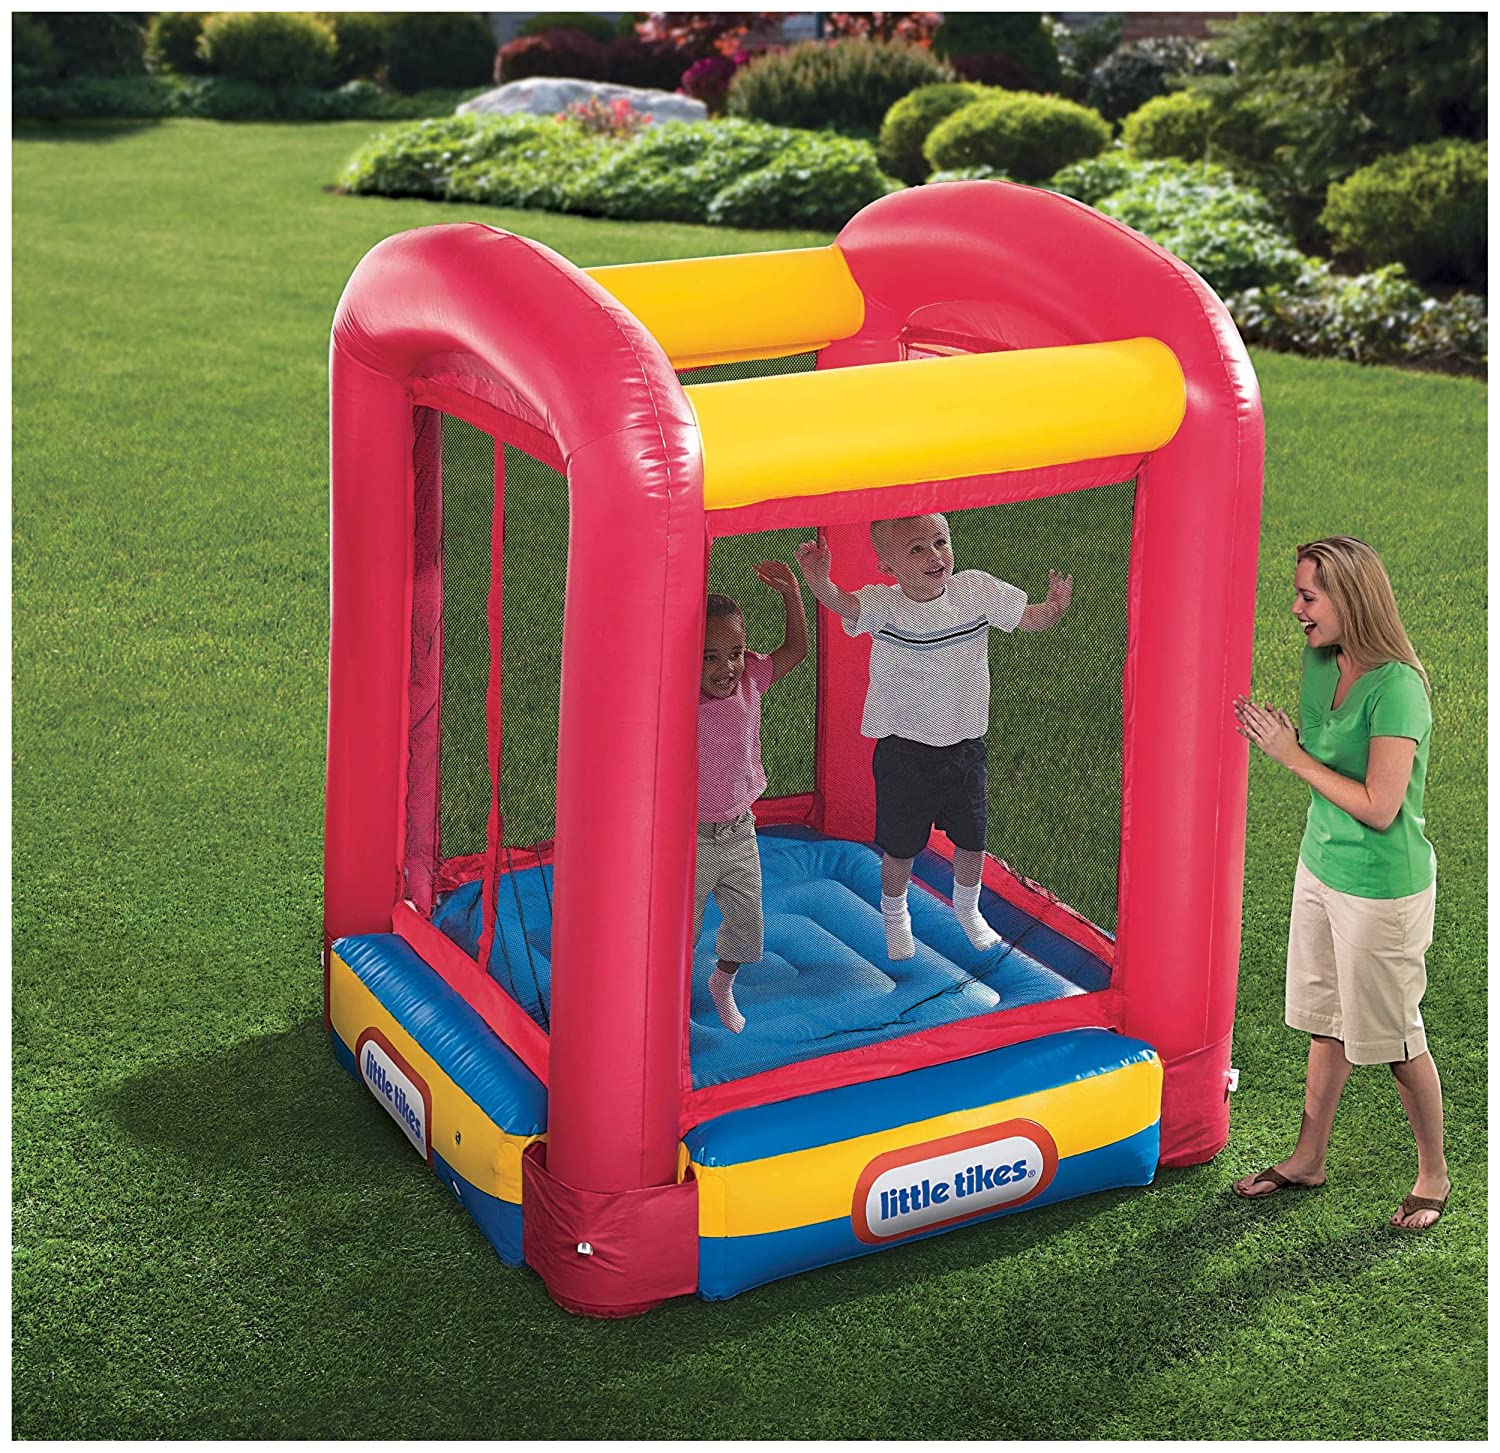 Little tikes bounce house trampoline giveaway for Little tikes house